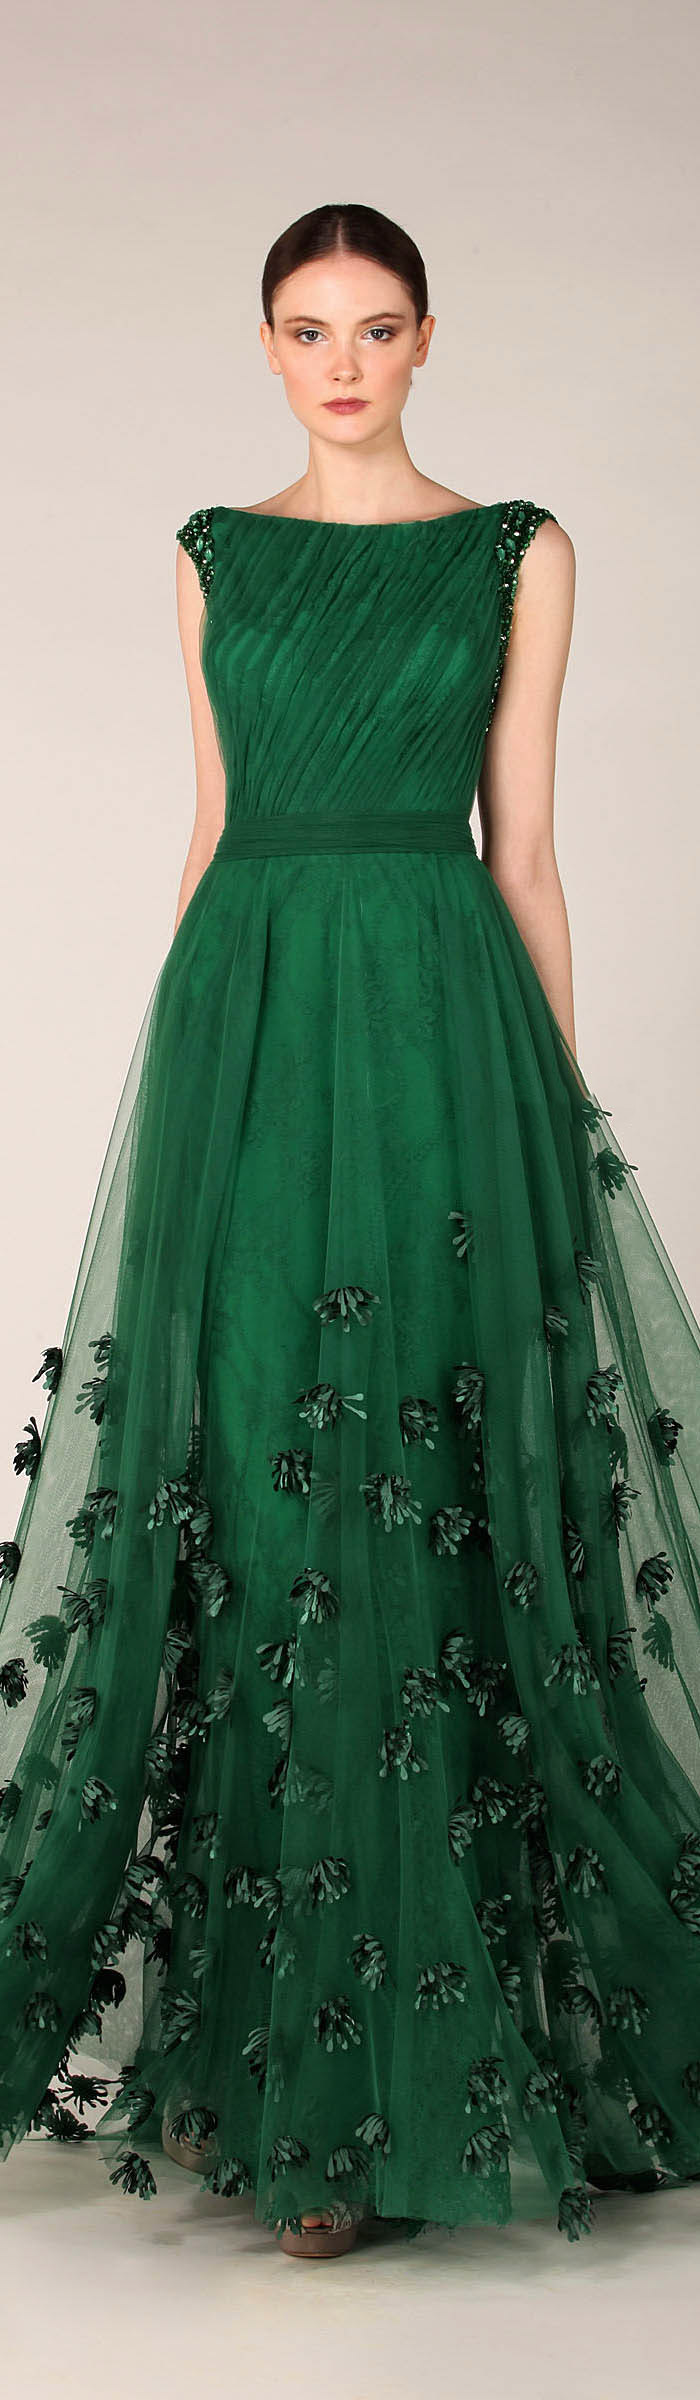 Tony ward fall winter 2013 2014 for How to be a fashion designer at 14